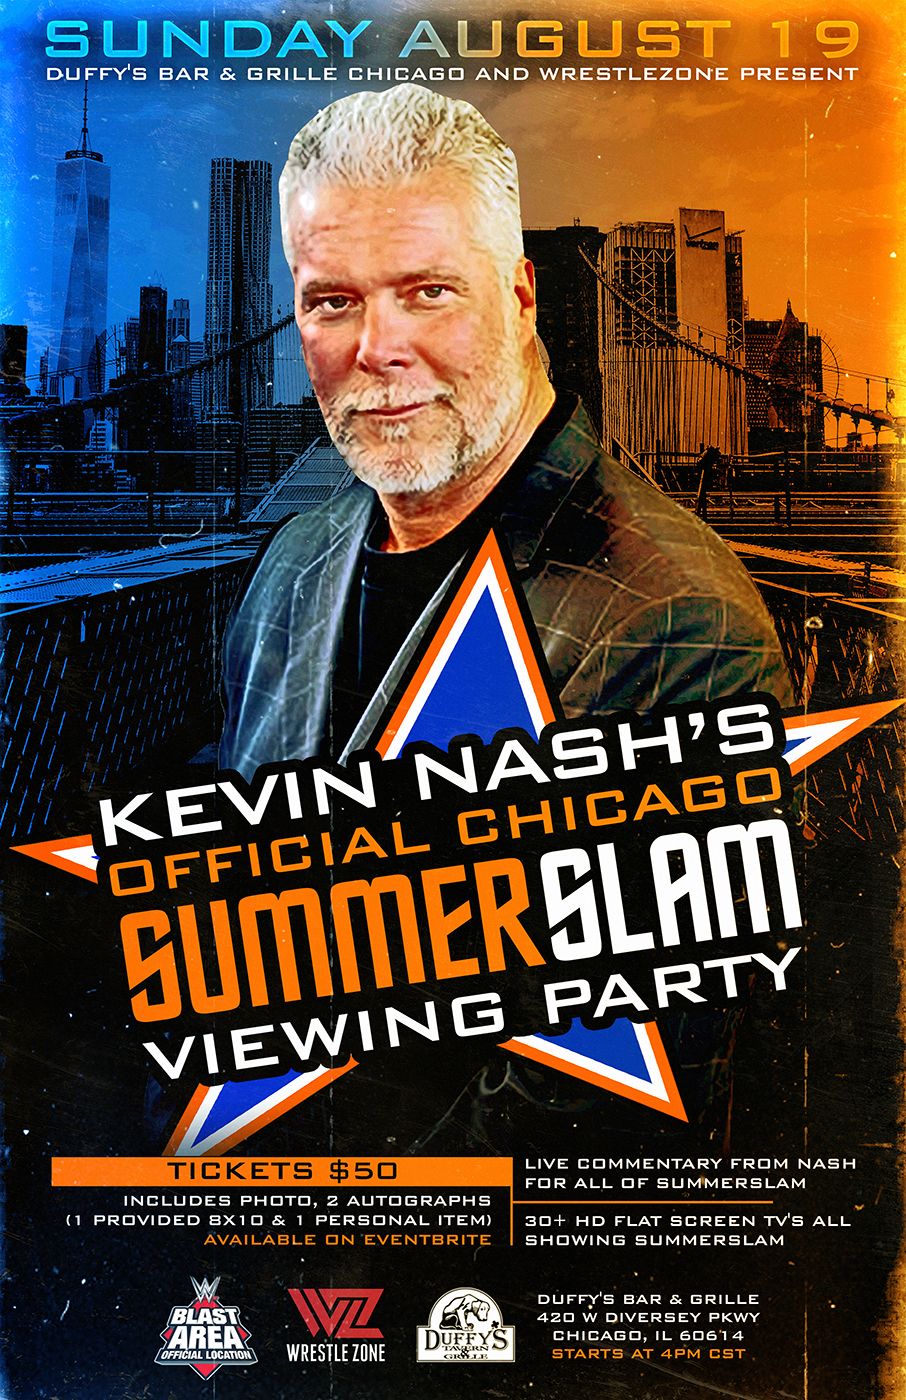 Kevin Nash's Official Chicago SummerSlam Viewing Party; Full Details